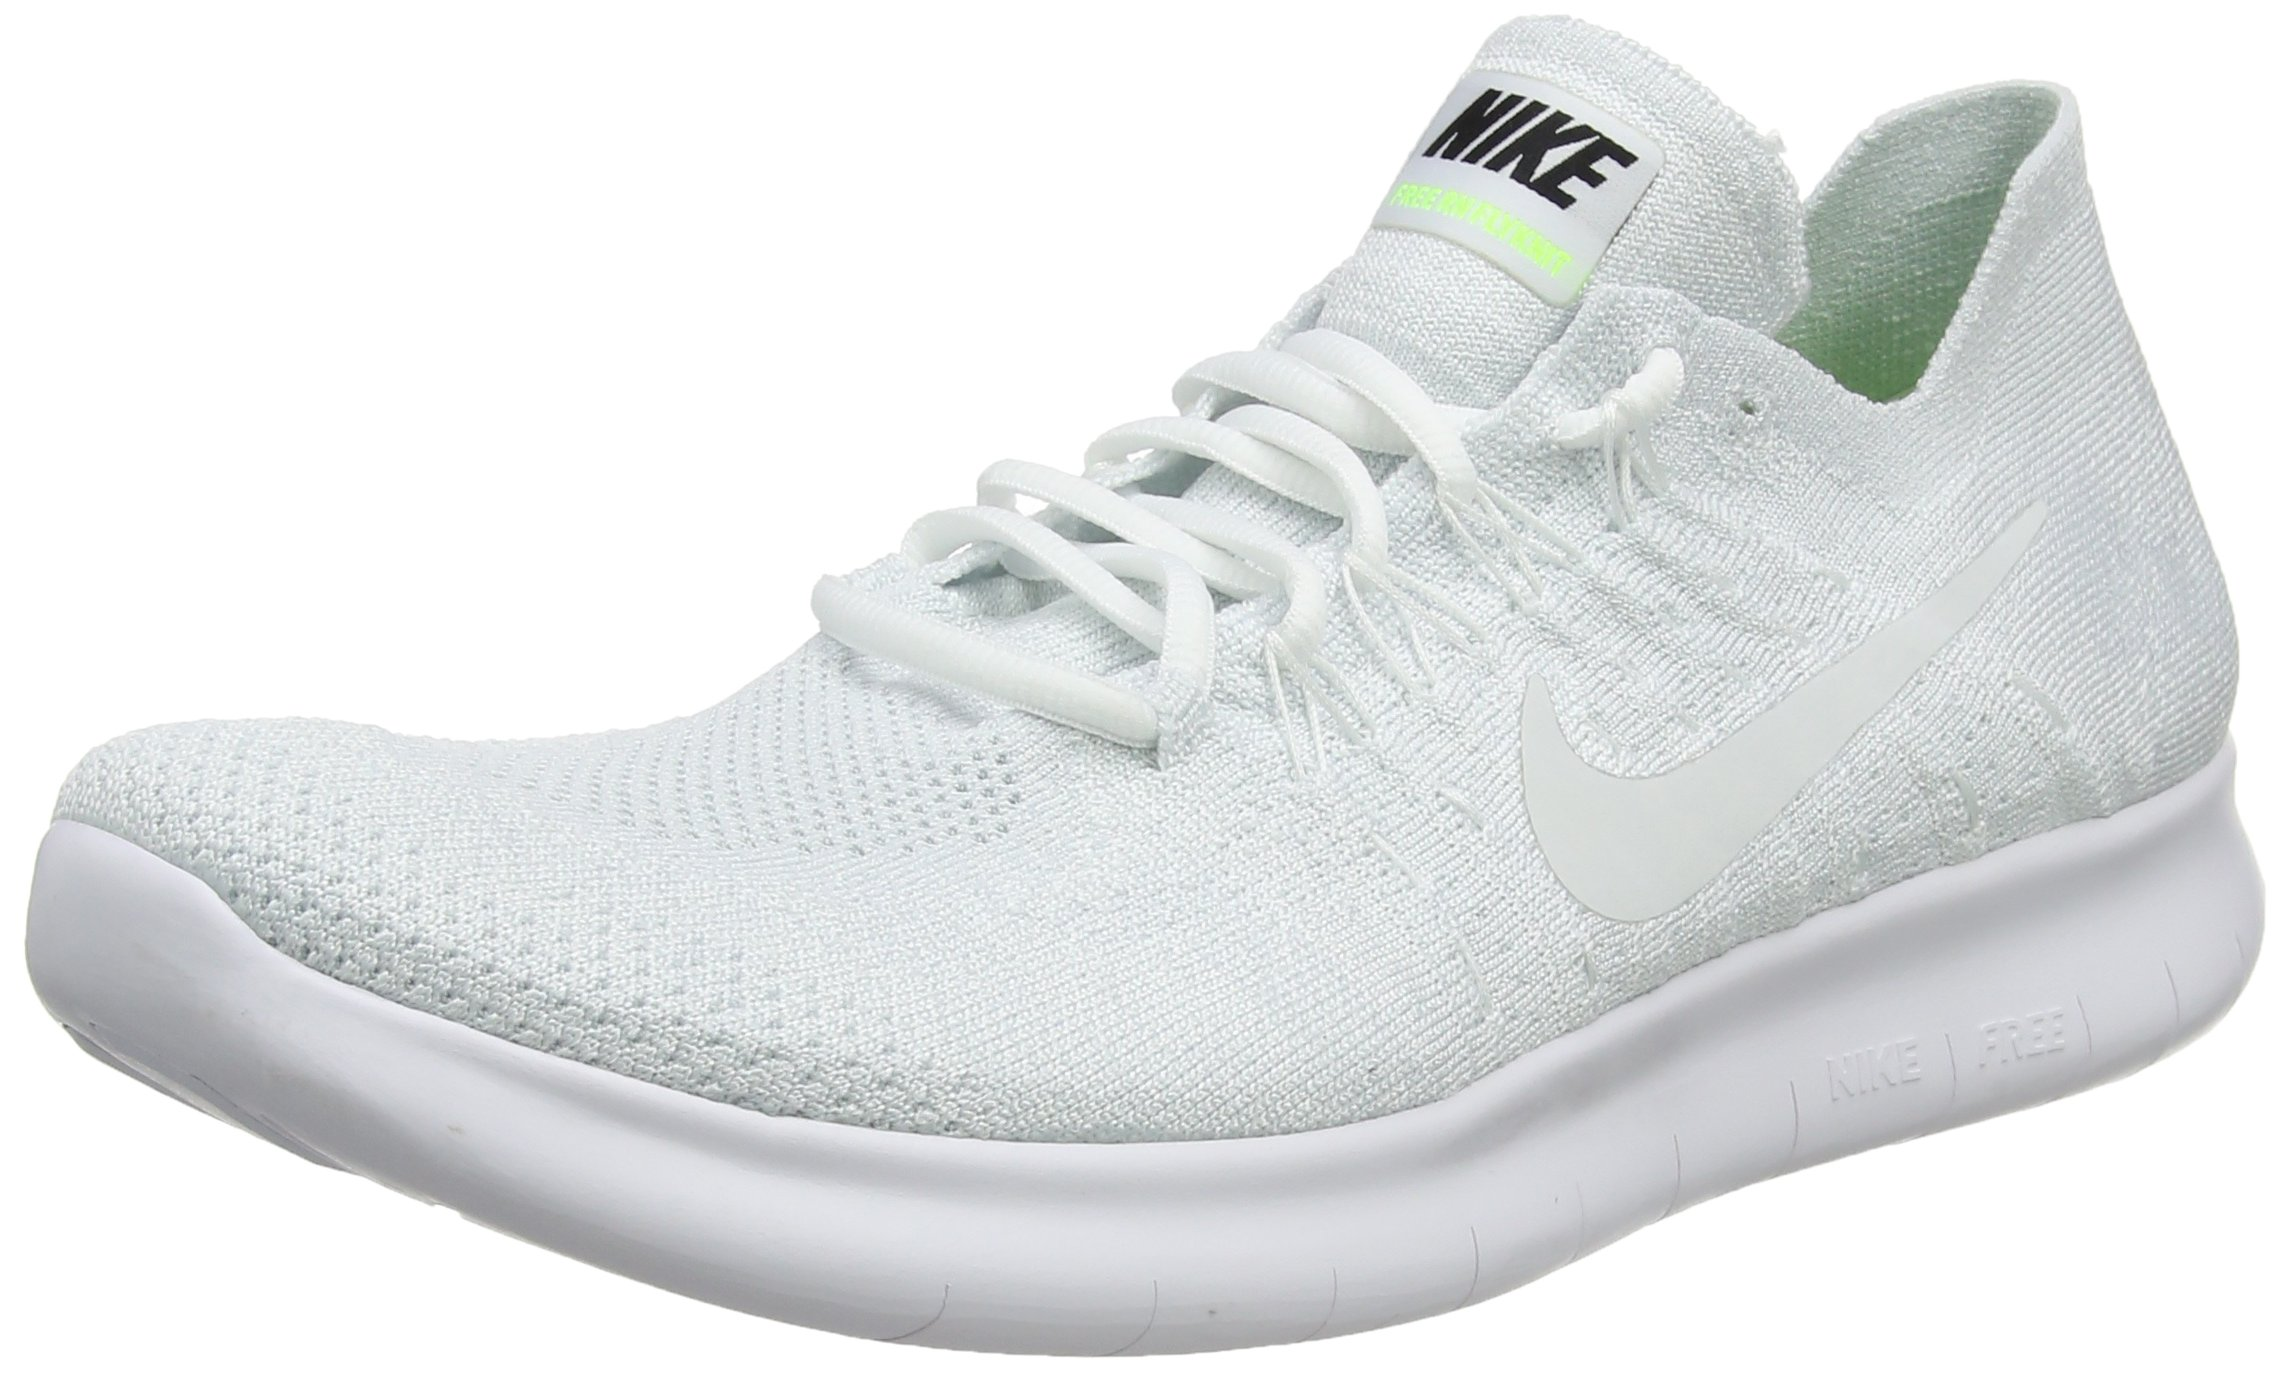 NIKE Men's Free RN Flyknit 2017 Running Shoe Light Carbon/Obsidian White/Pure Platinum 10 D(M) US